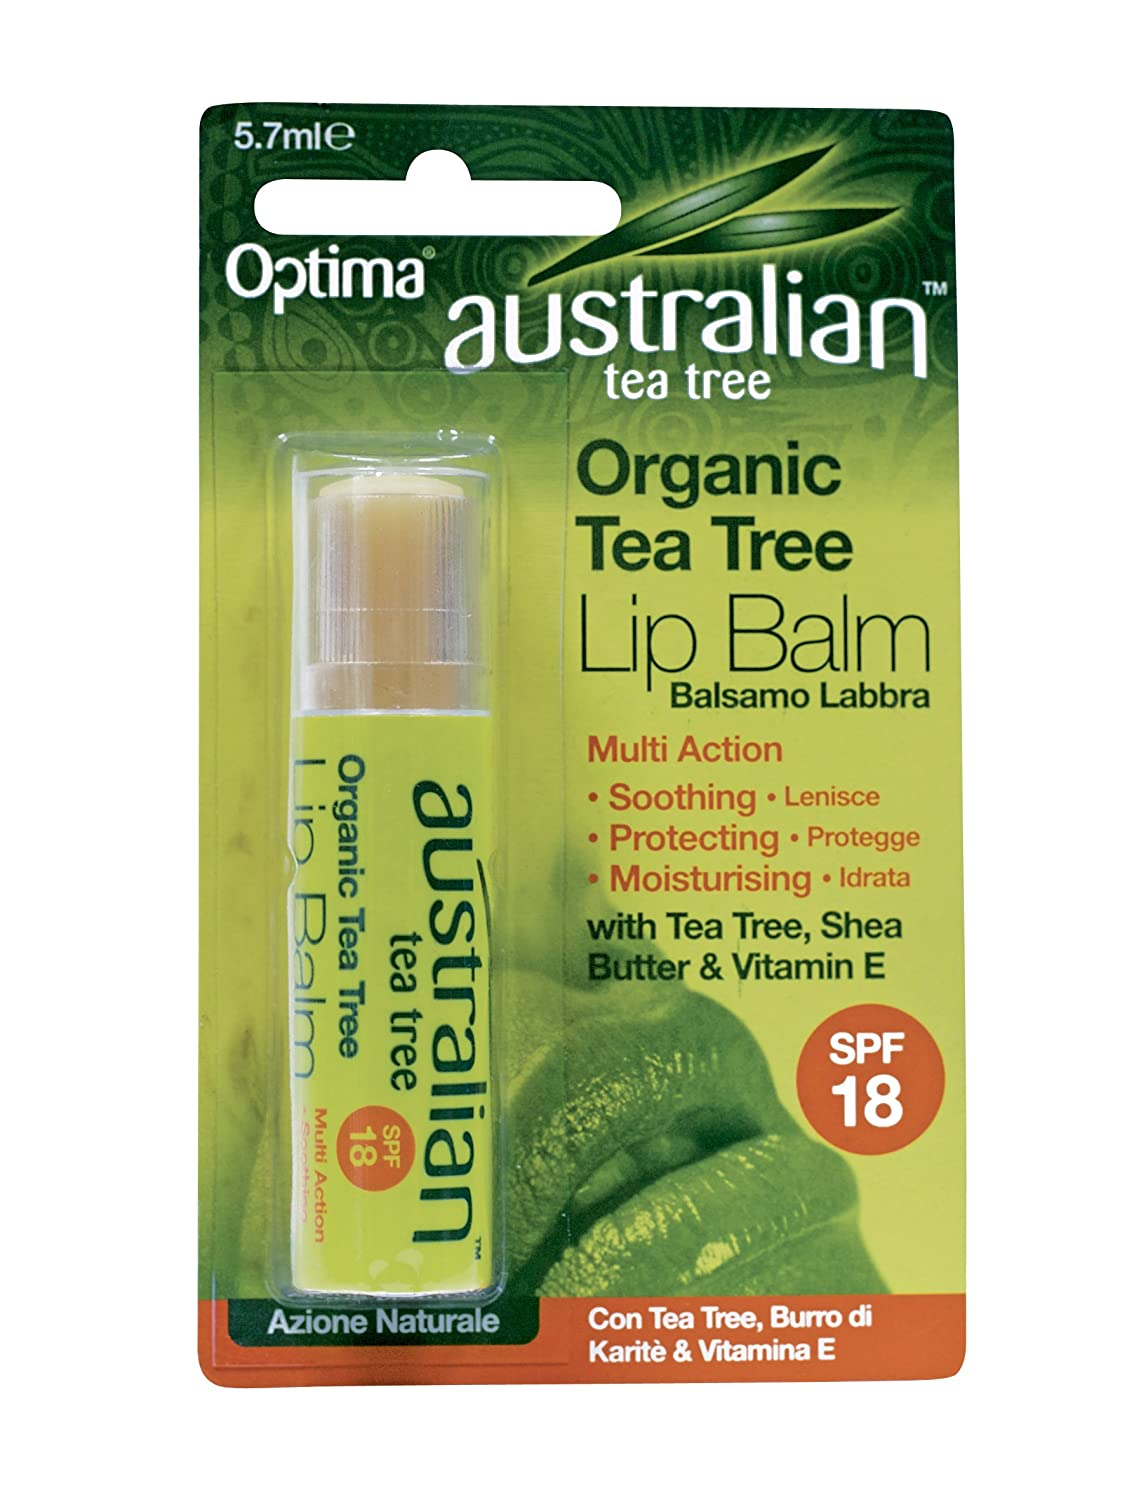 Australian Tea Tree Balsamo Labbra 5, 7 ml Tree of Life UK Ltd 67177 WRC01049_verde